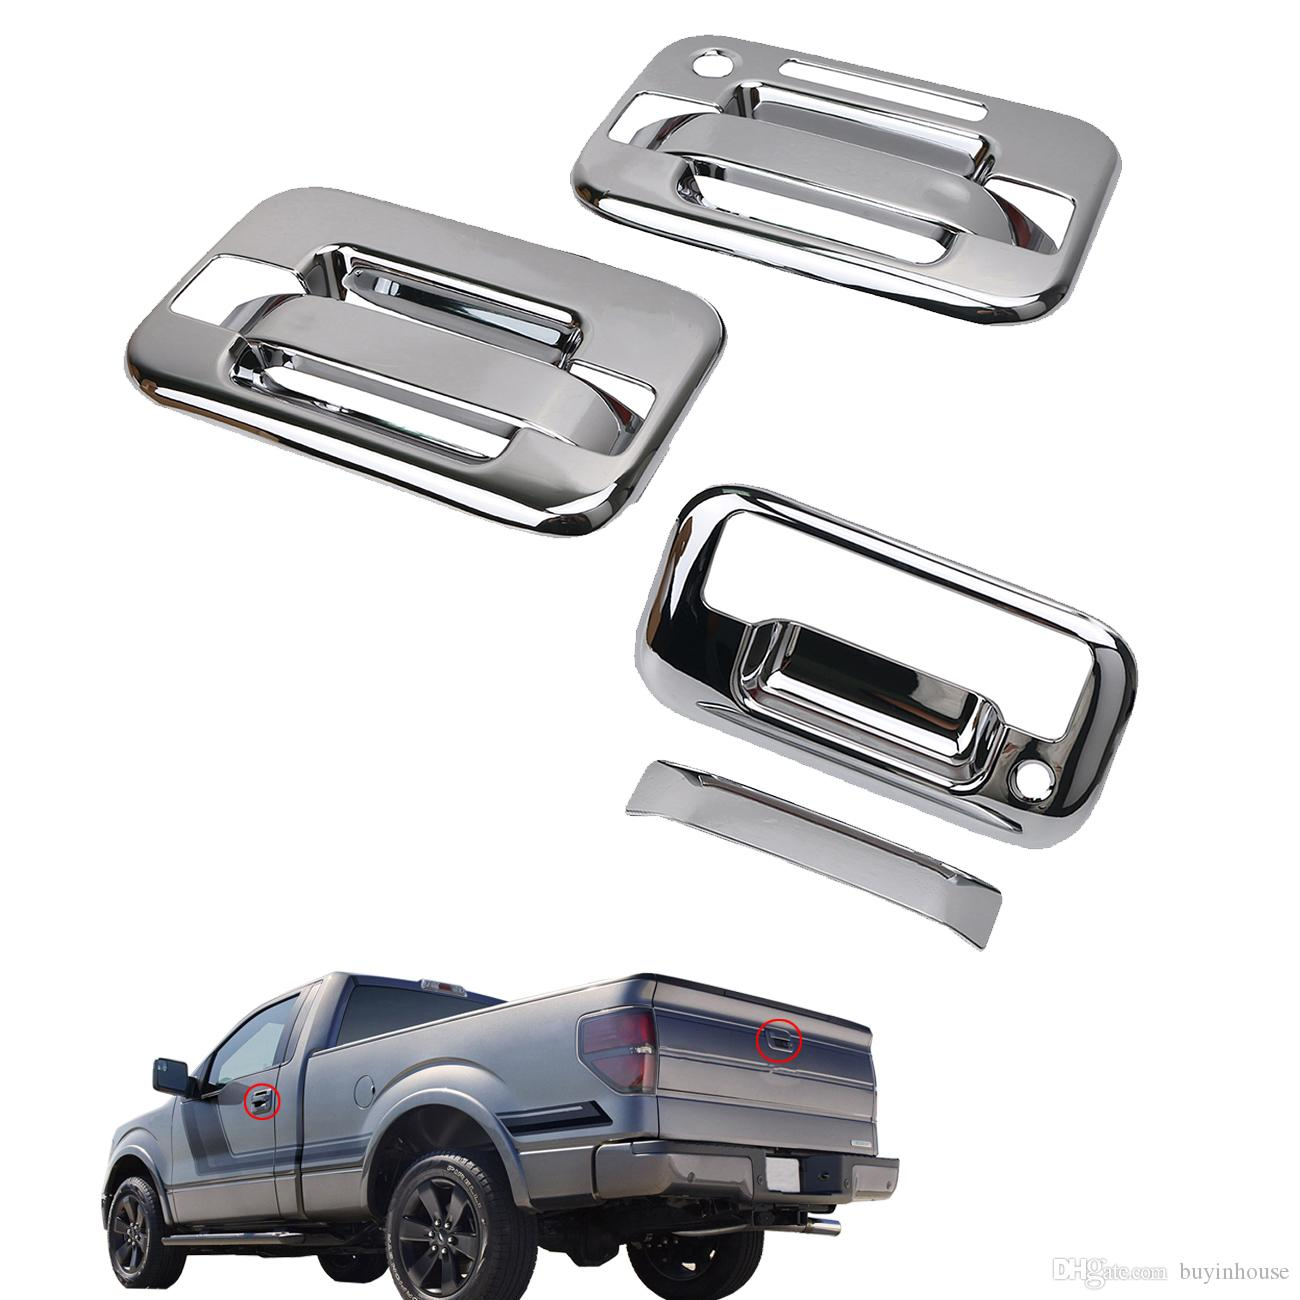 2018 Chrome 2 Door Handle Cover + Tailgate Handle Cover For Ford F150 F 150 2004 2014 Rc026 From Buyinhouse $31.48 | Dhgate.Com  sc 1 st  DHgate.com & 2018 Chrome 2 Door Handle Cover + Tailgate Handle Cover For Ford ...